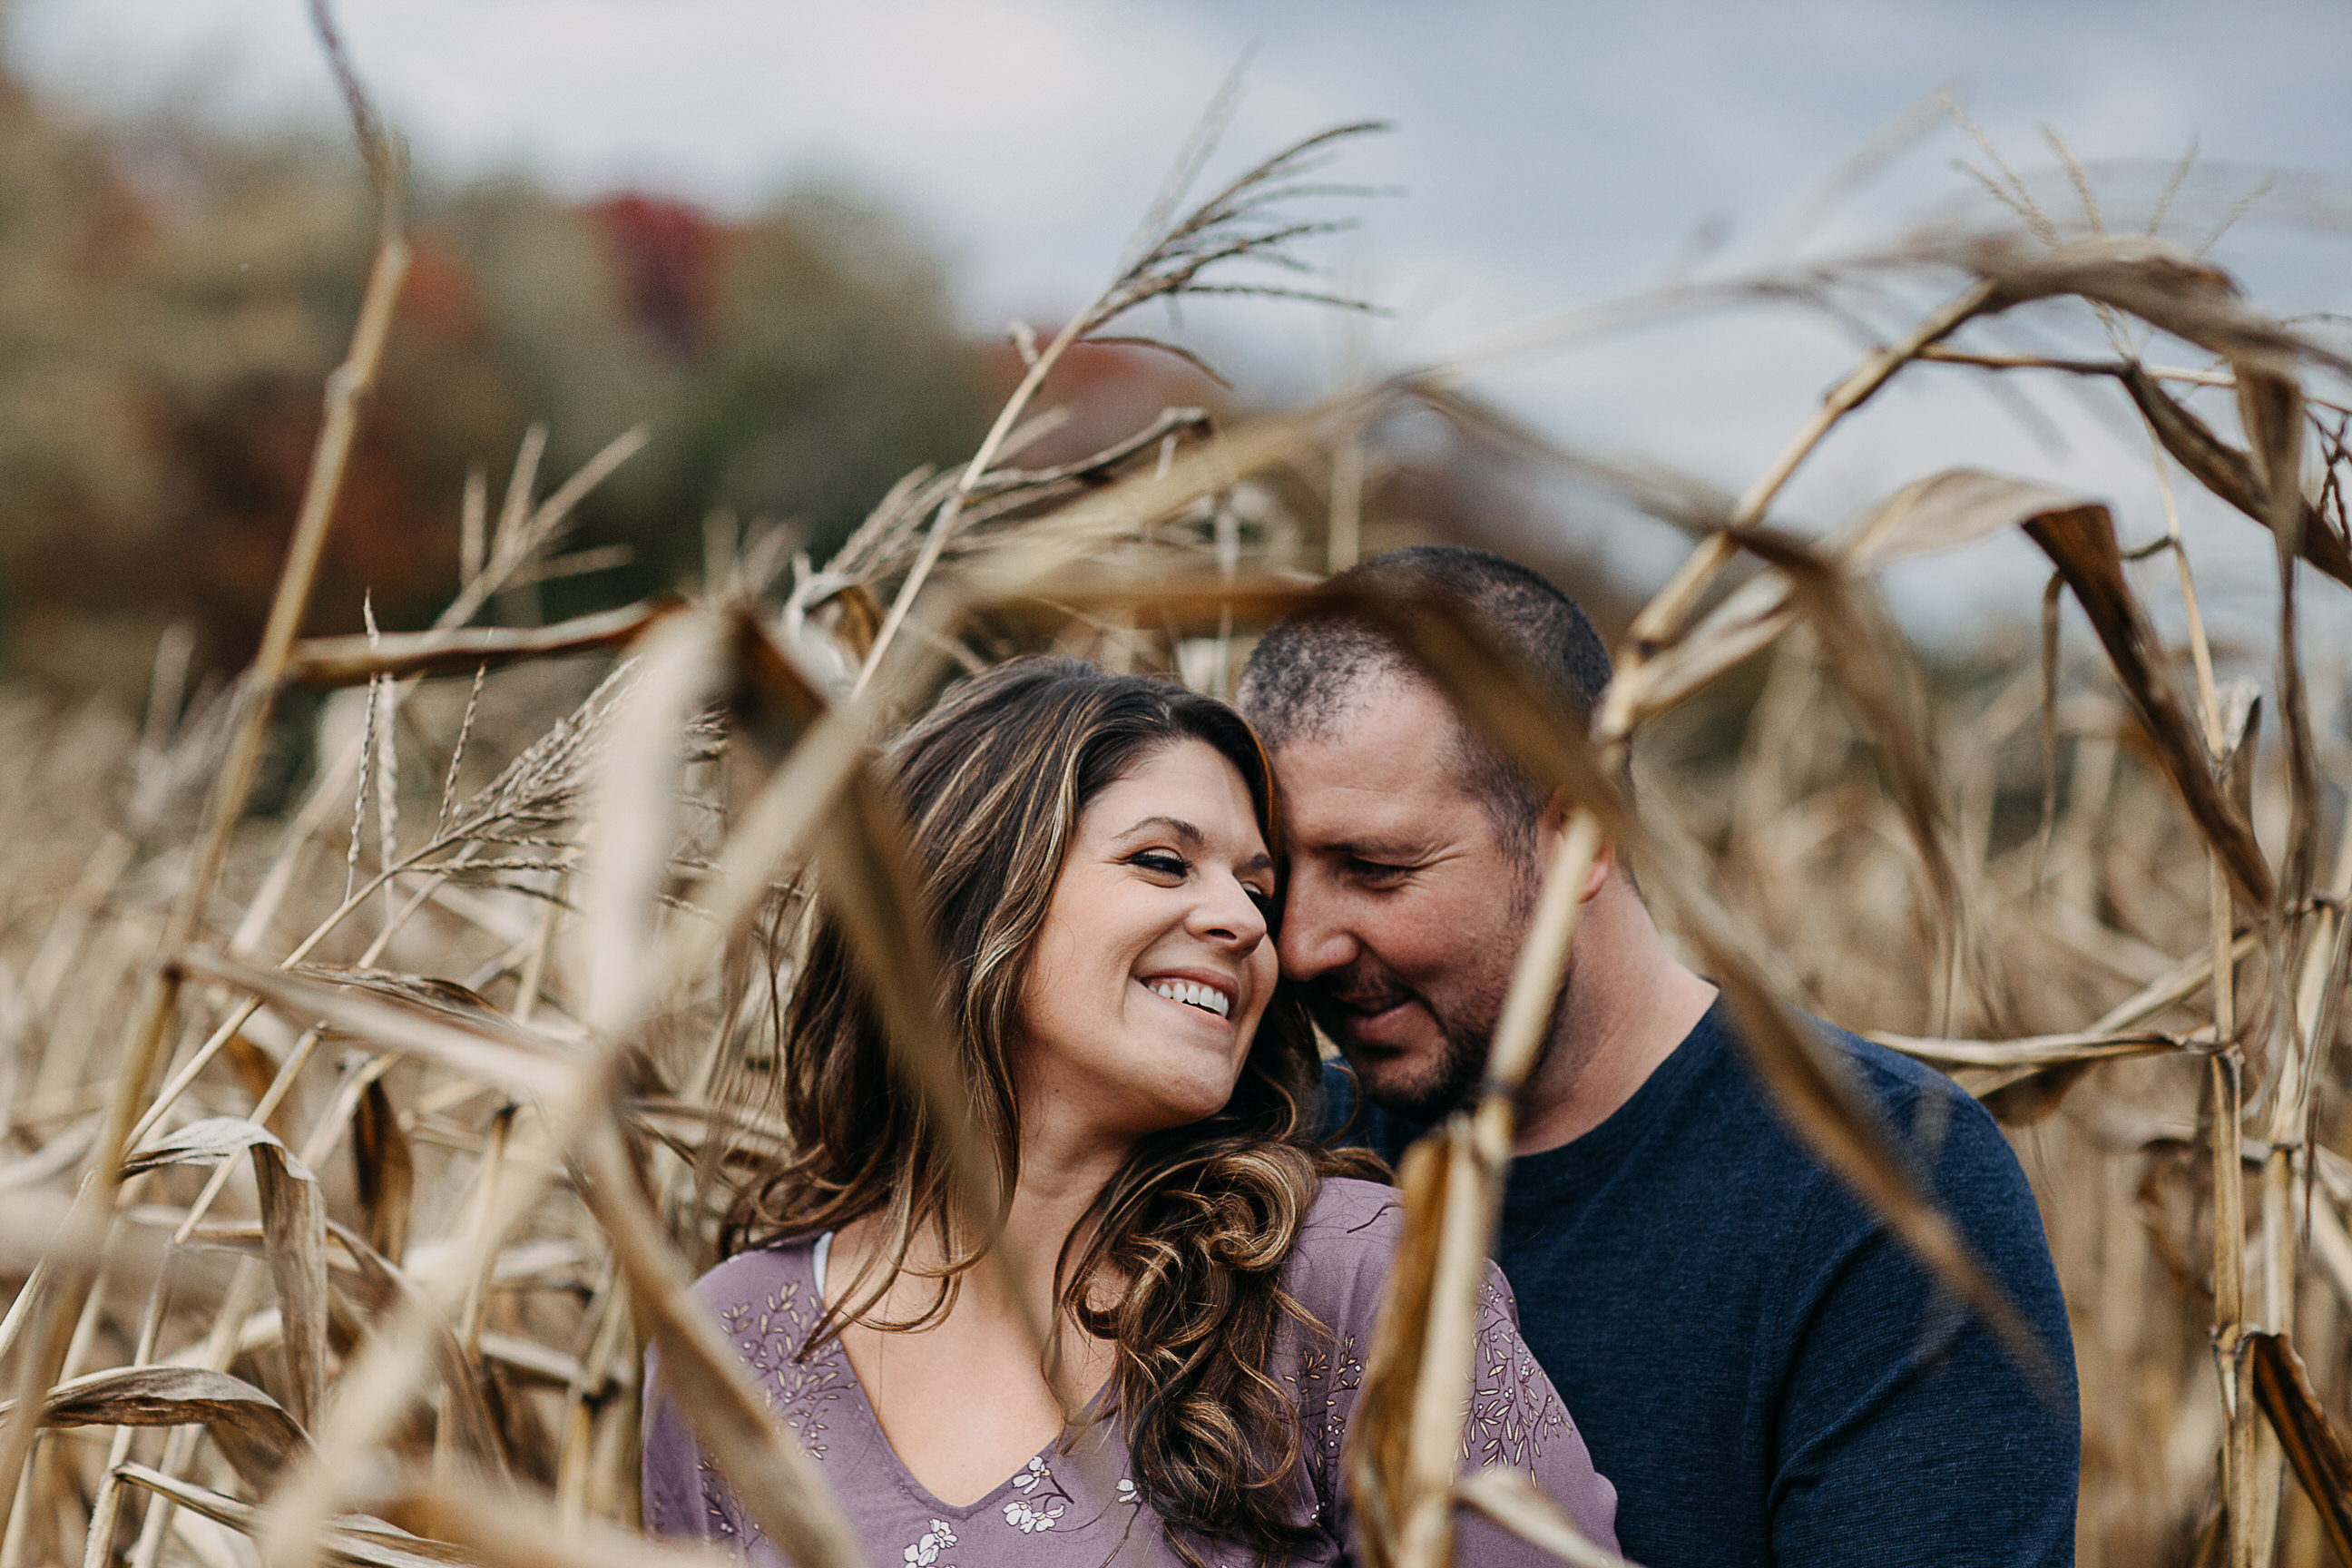 Berkshire wedding photographer - Corey Lynn tucker